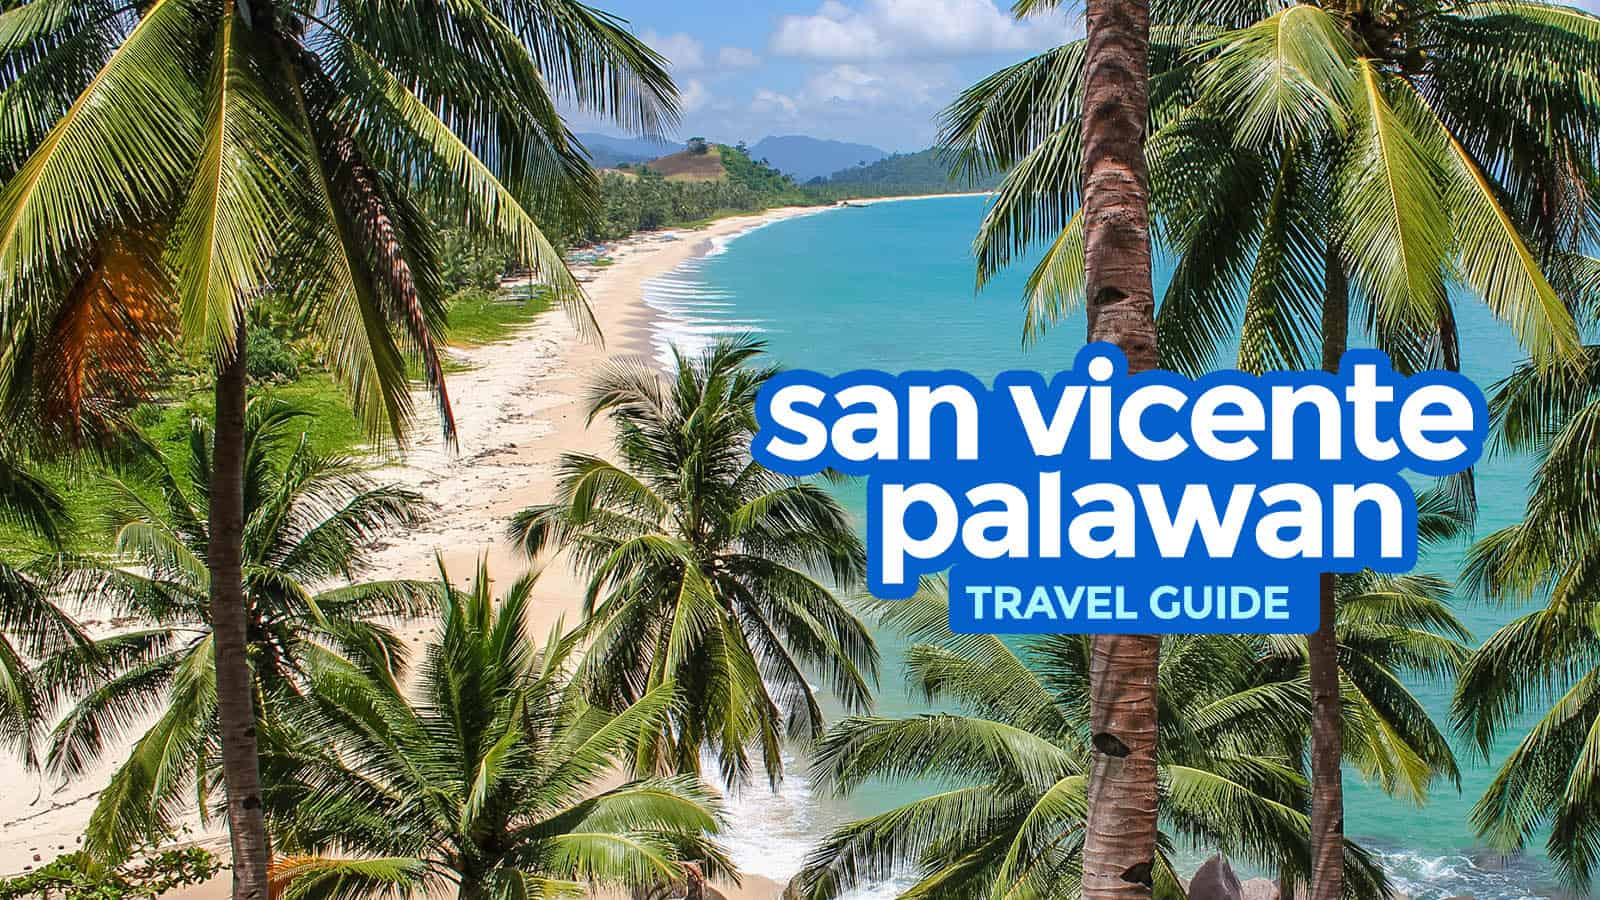 SAN VICENTE PALAWAN Travel Guide with Budget Itinerary